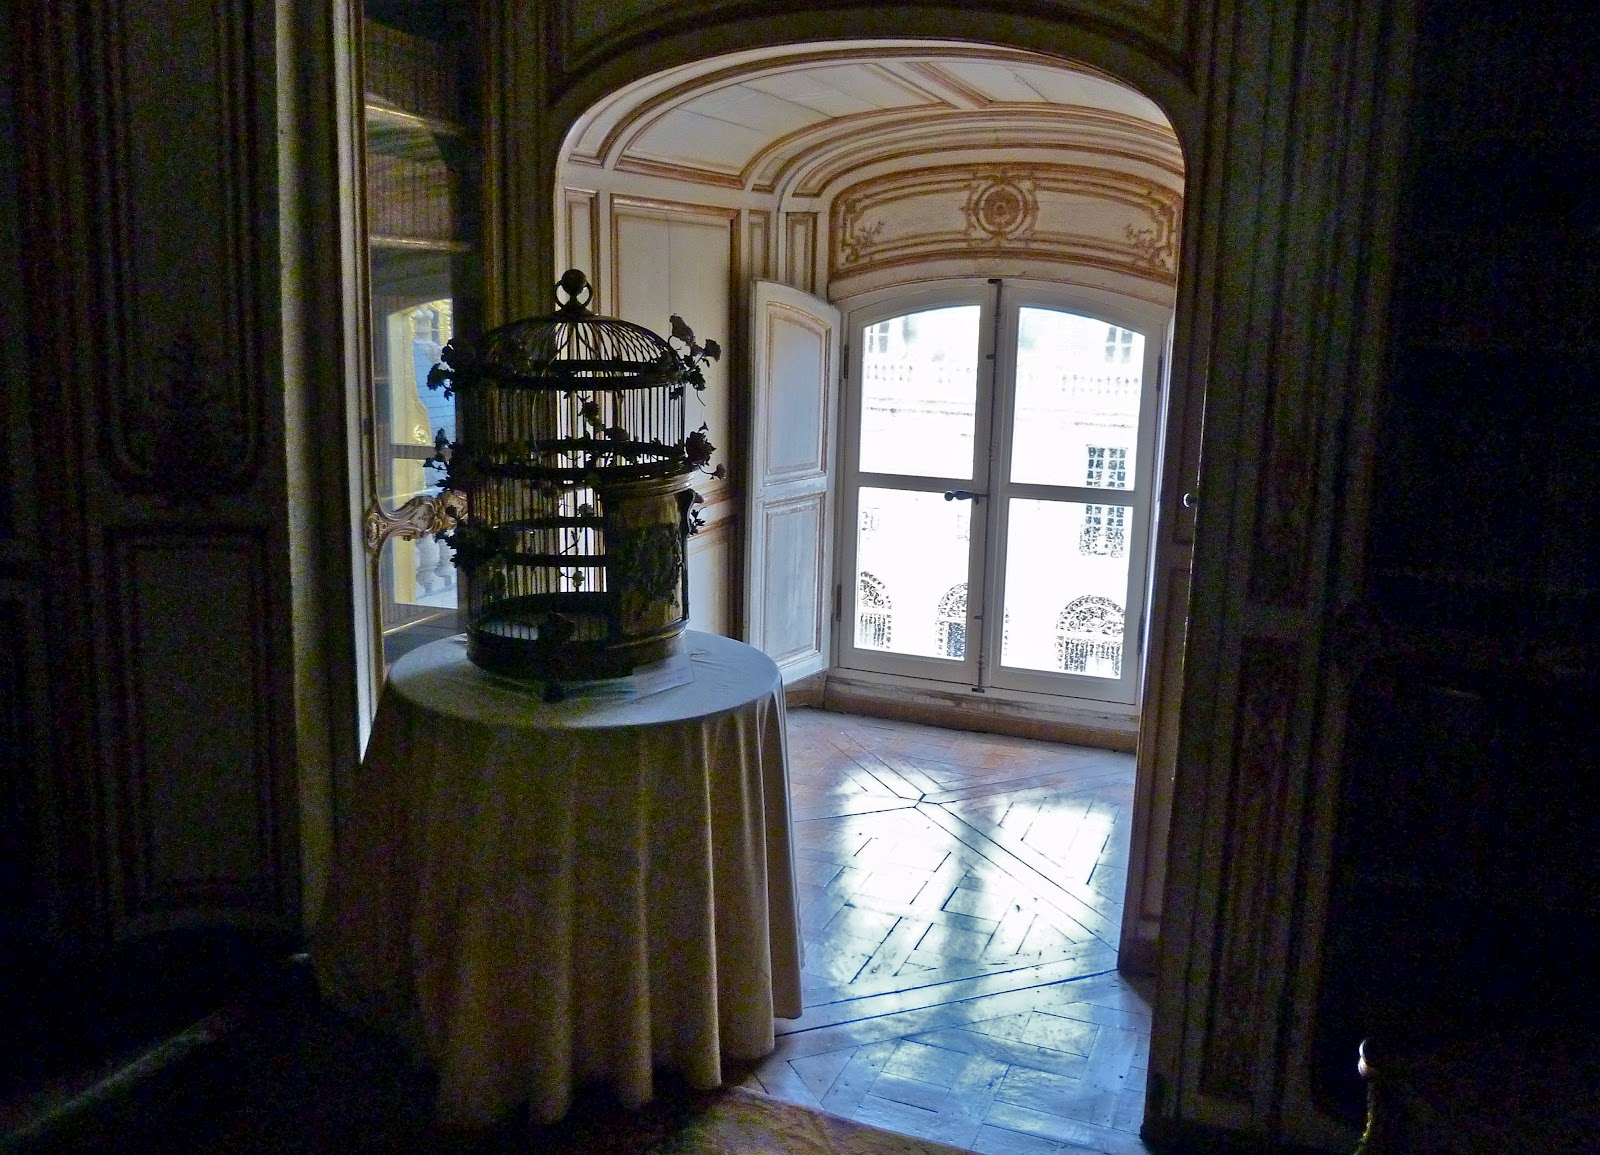 Rooms: One Of Mme Du Barry's Rooms